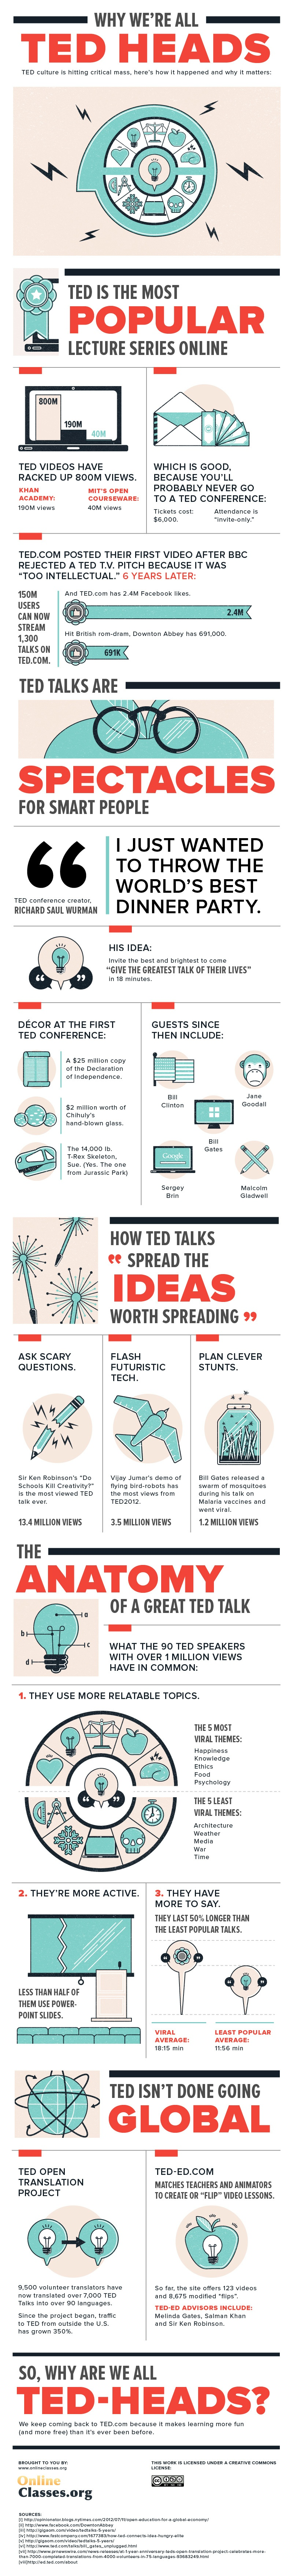 Why TED is a Great Place to Learn Online Infographic